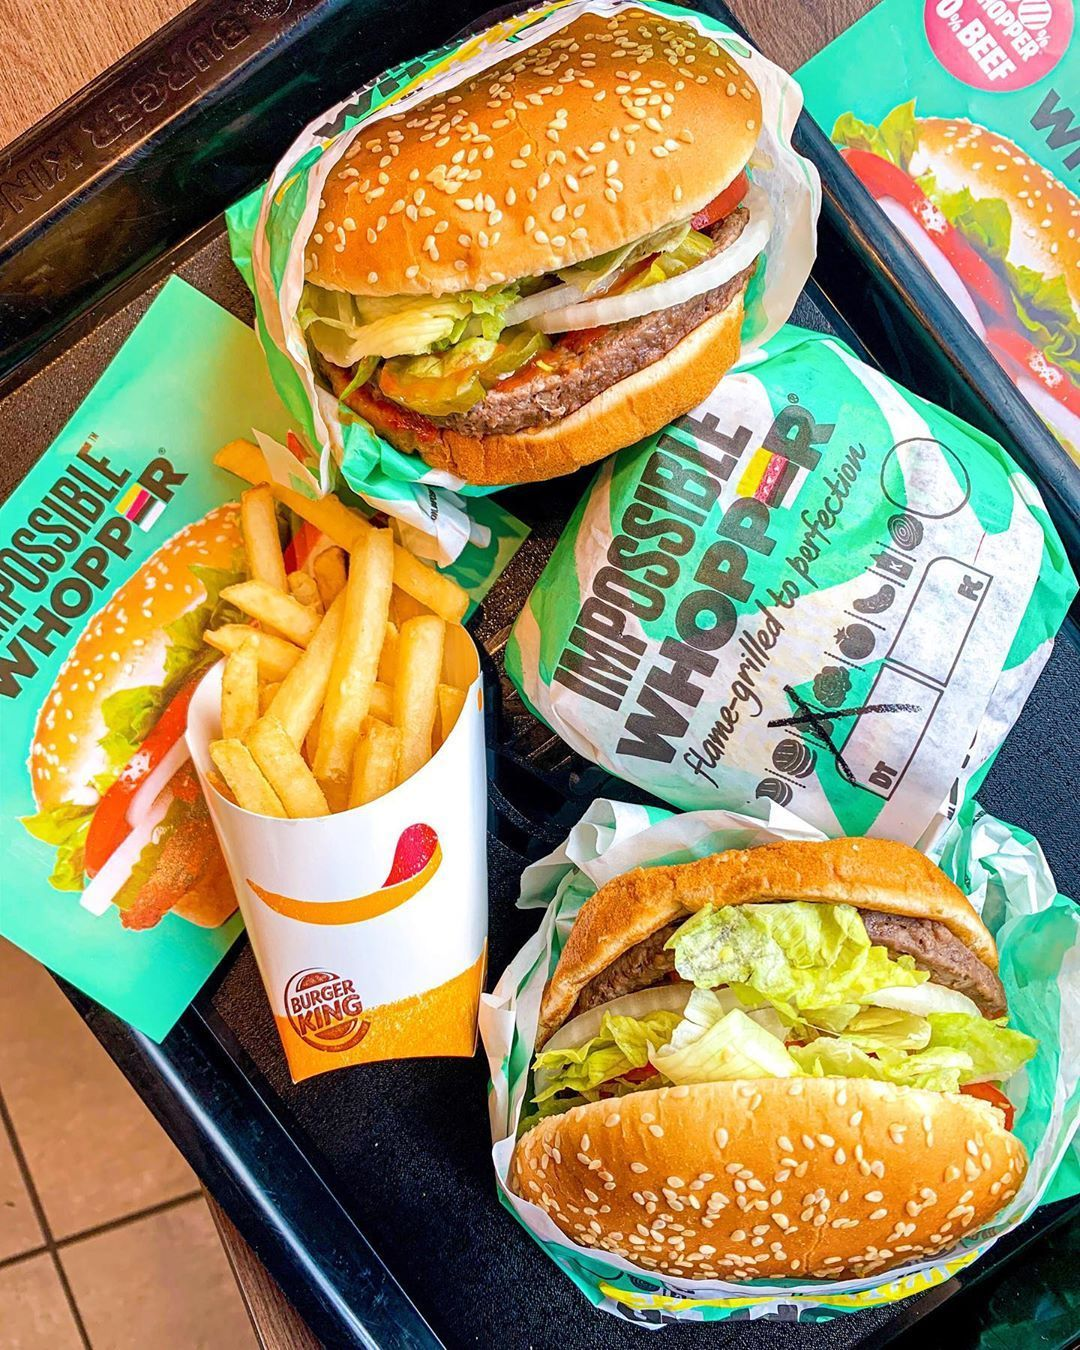 Feeling Like A Burger Kween I Have So Much To Share About This Burger Feeling Kween Share Veganfastfoo In 2020 Burger Vegan Fast Food Burger King